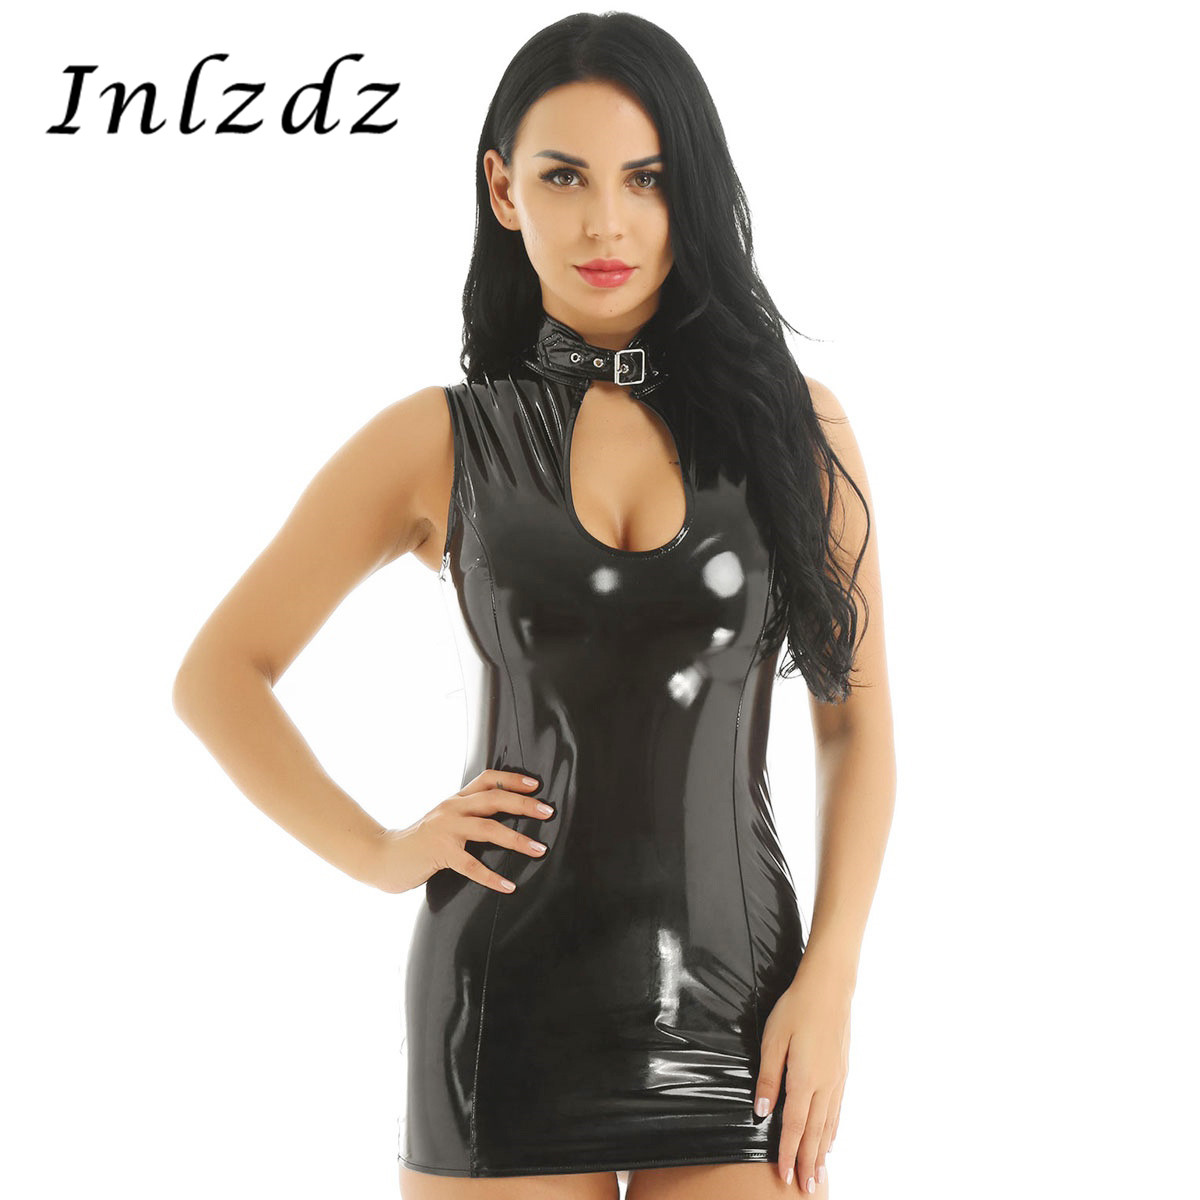 Hot Sexy Latex Dress For Adult Women Patent Leather Lingerie Tube Latex Dress Uniforms Fetish Latex Sexual Clothing For Sex